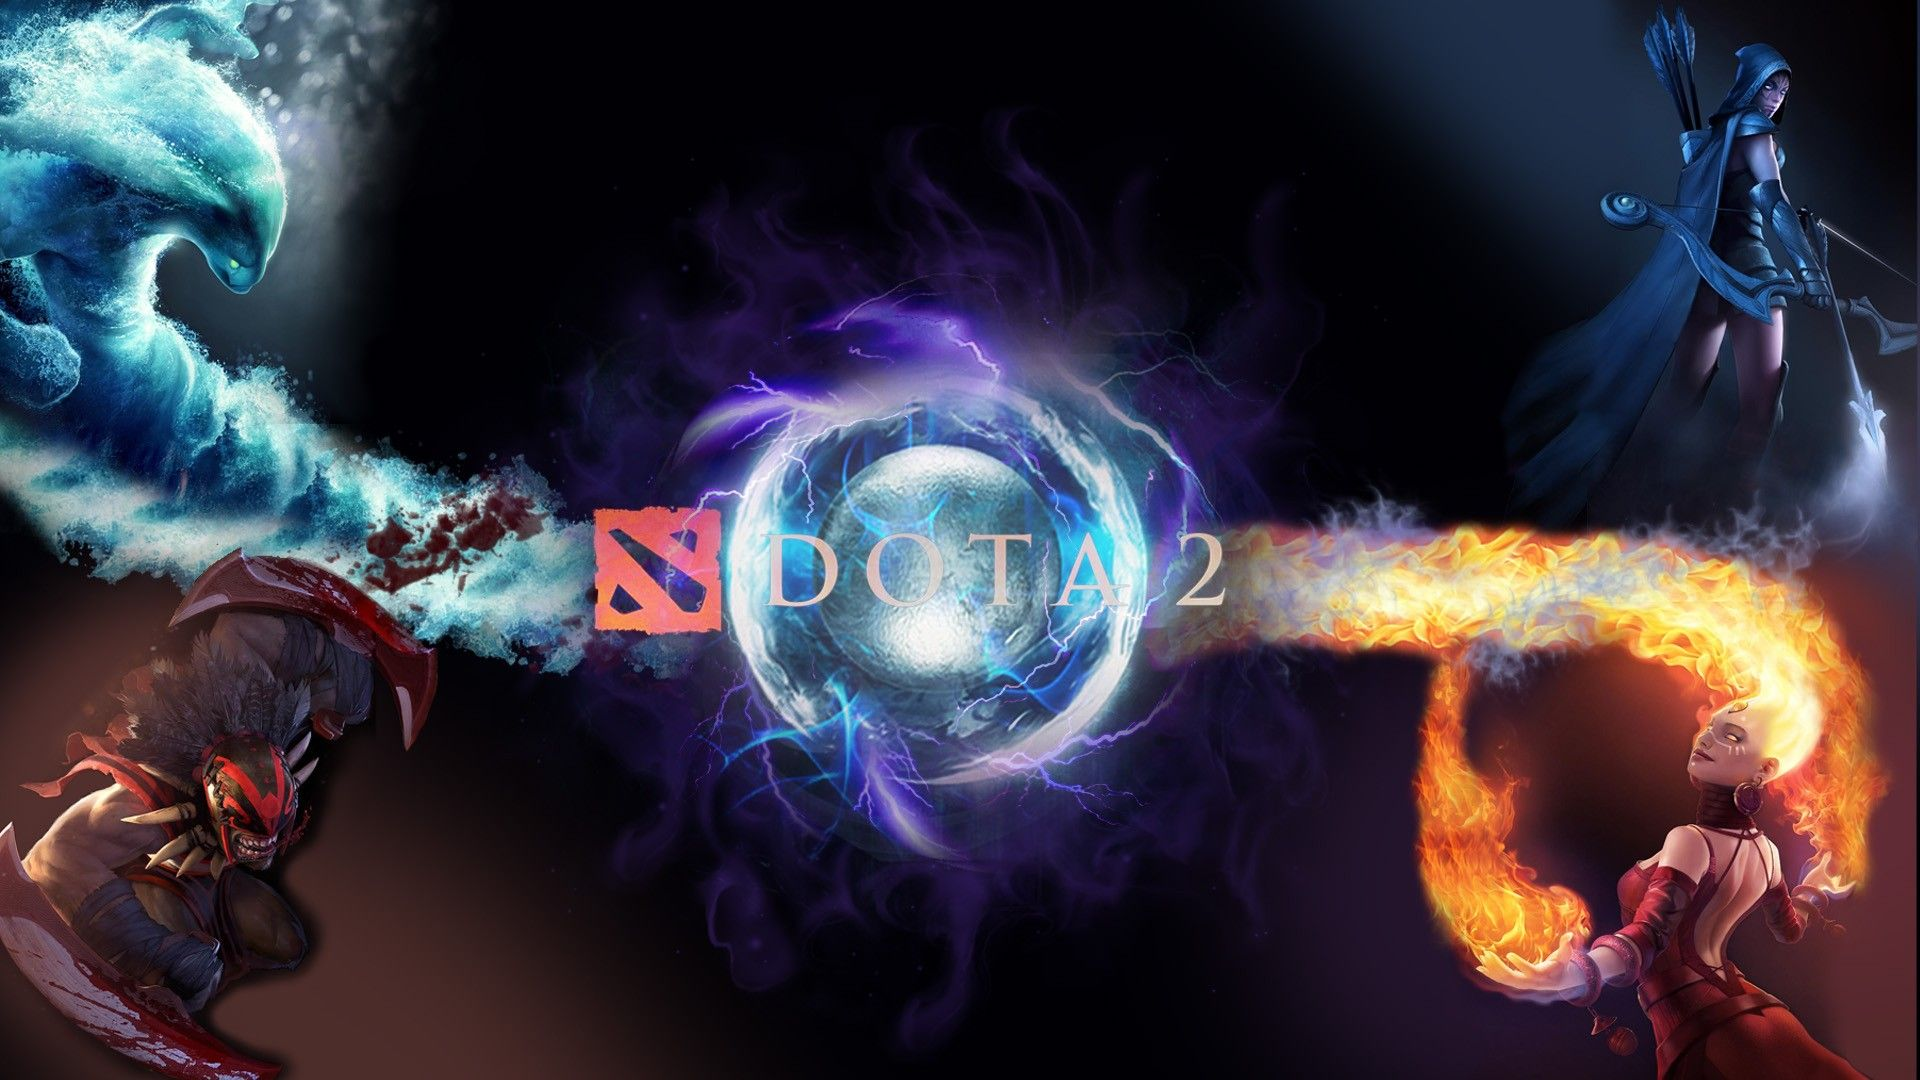 Dota 2 Heroes Images Dota 2 Wallpapers Hd Dota 2 Wallpaper Dota 2